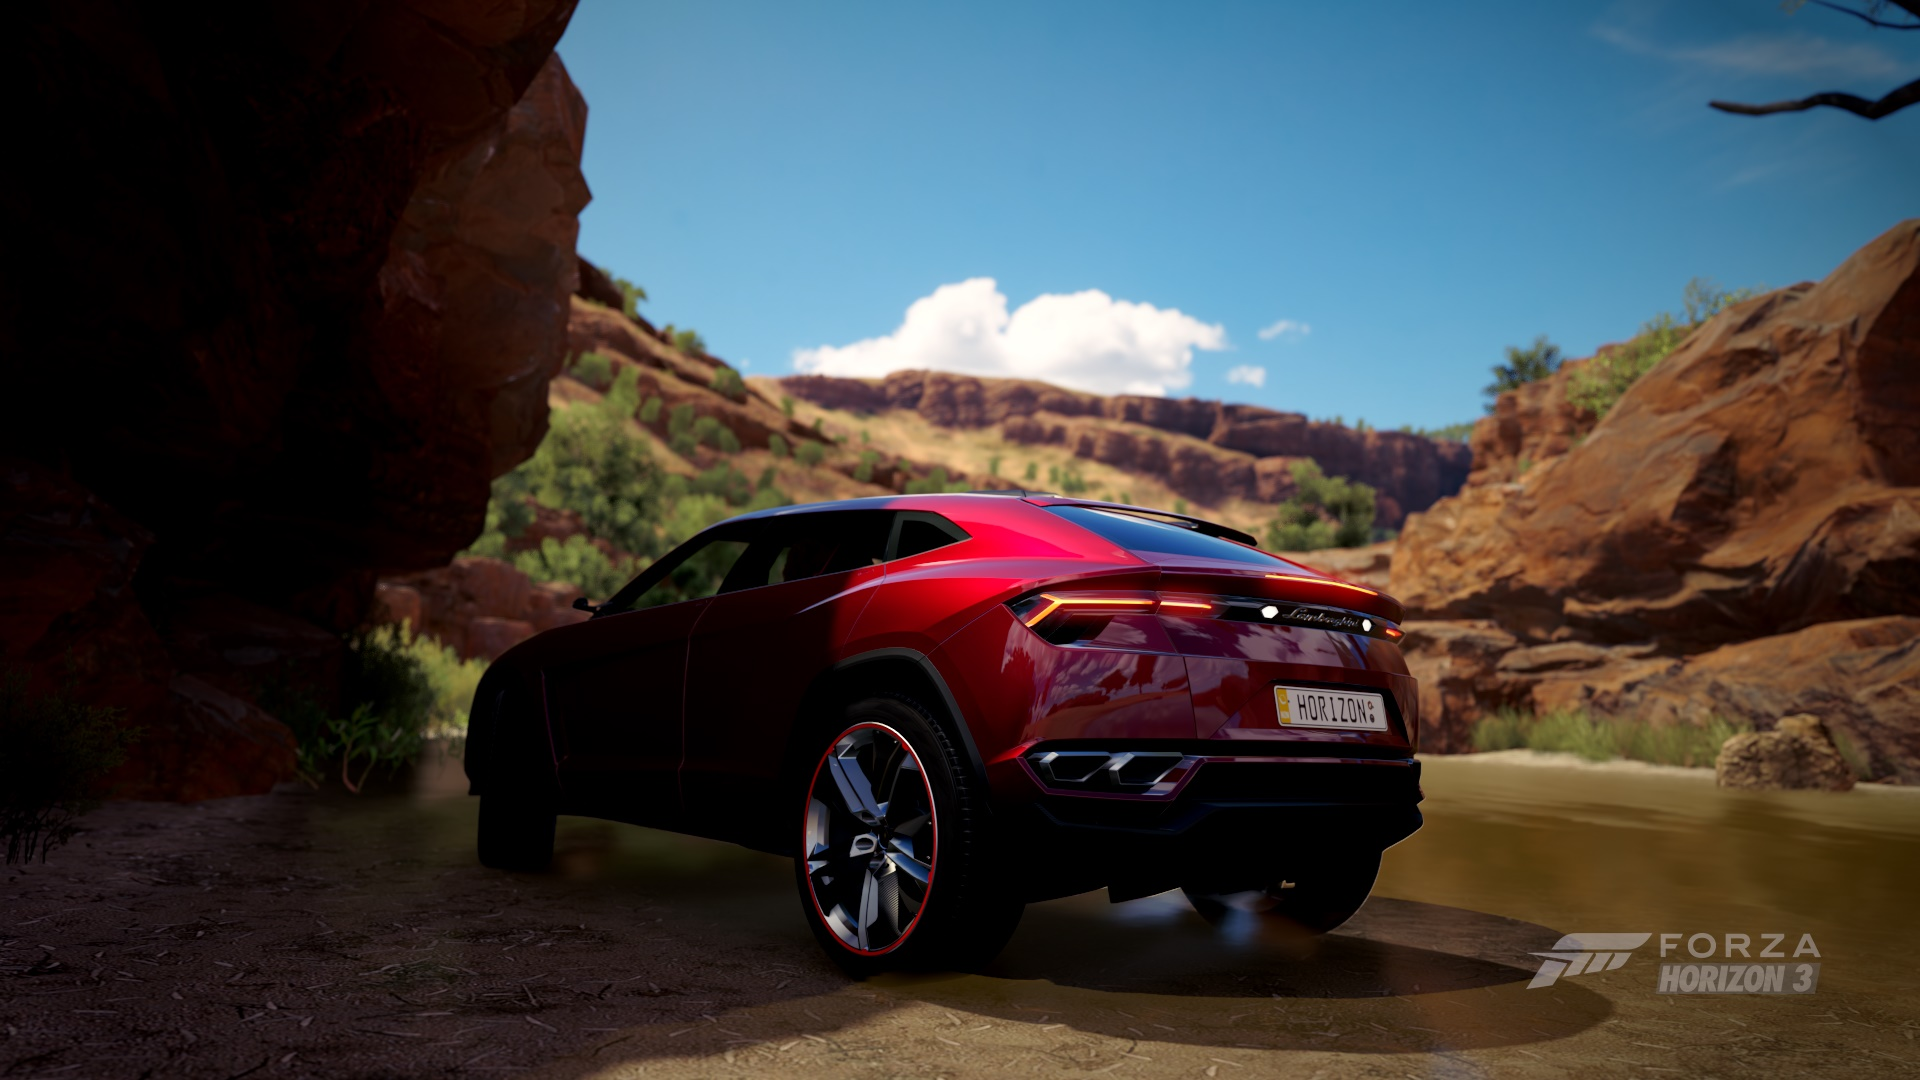 2014 lamborghini urus full hd wallpaper and background image